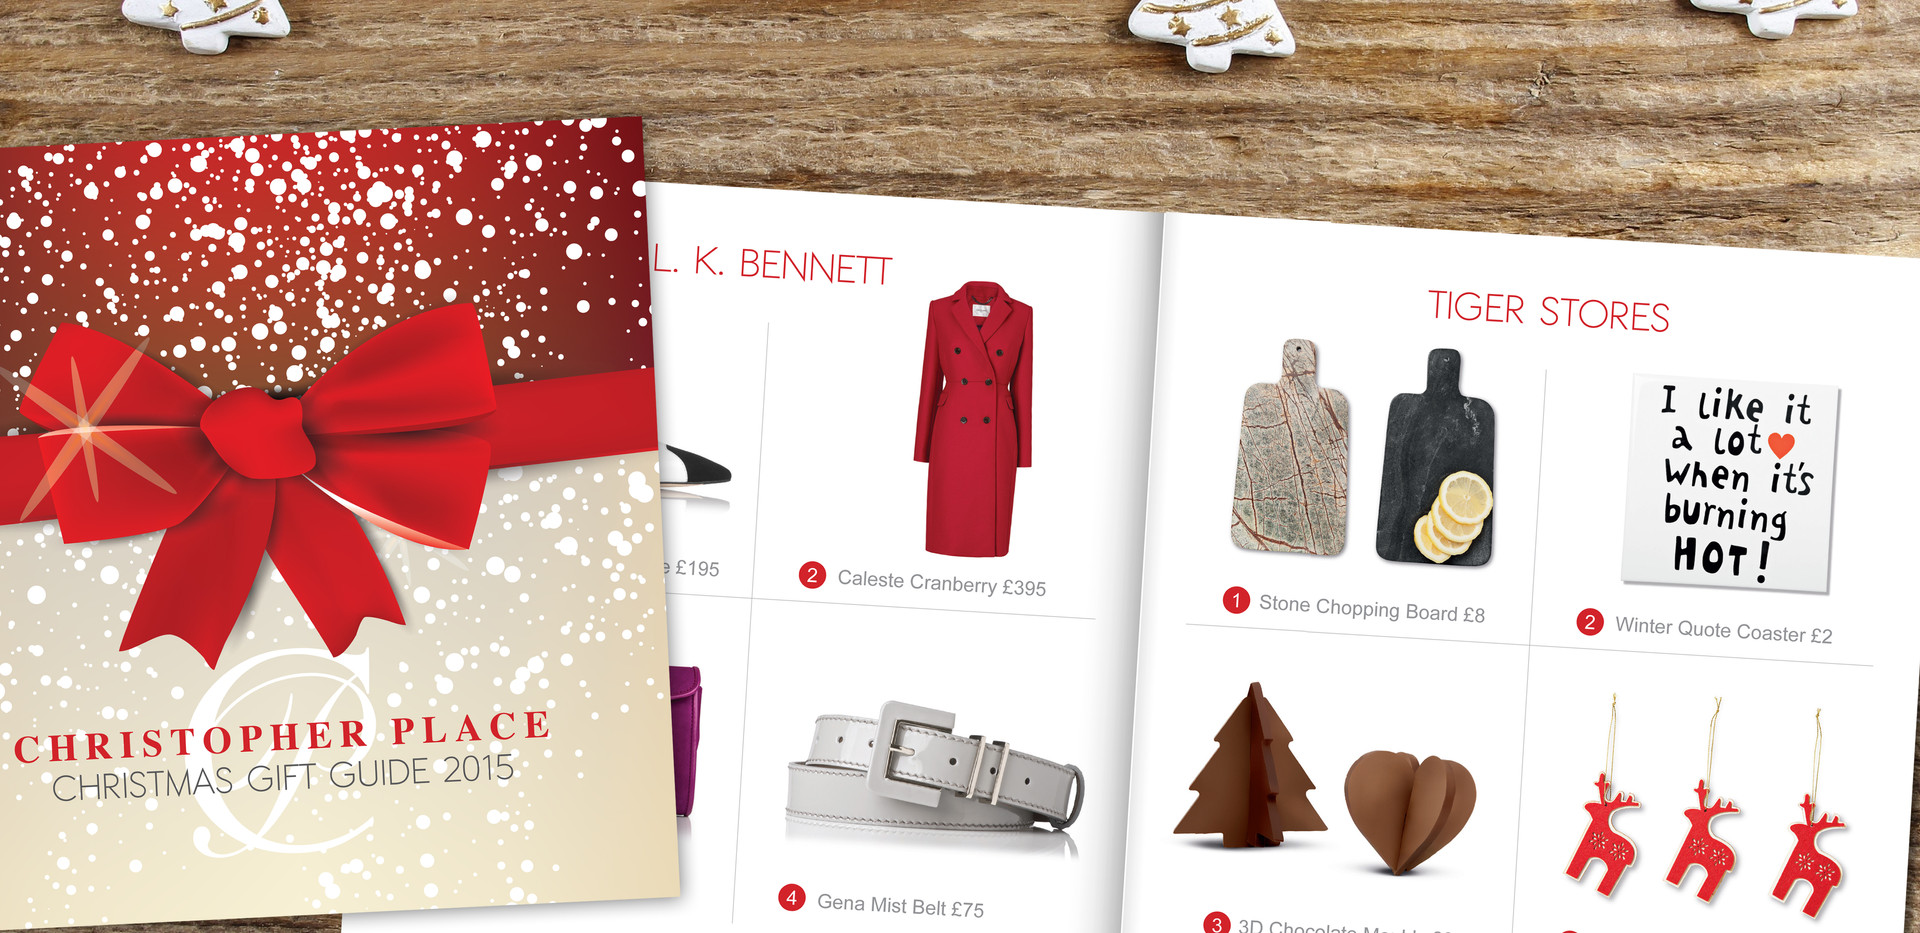 Gift guide booklet